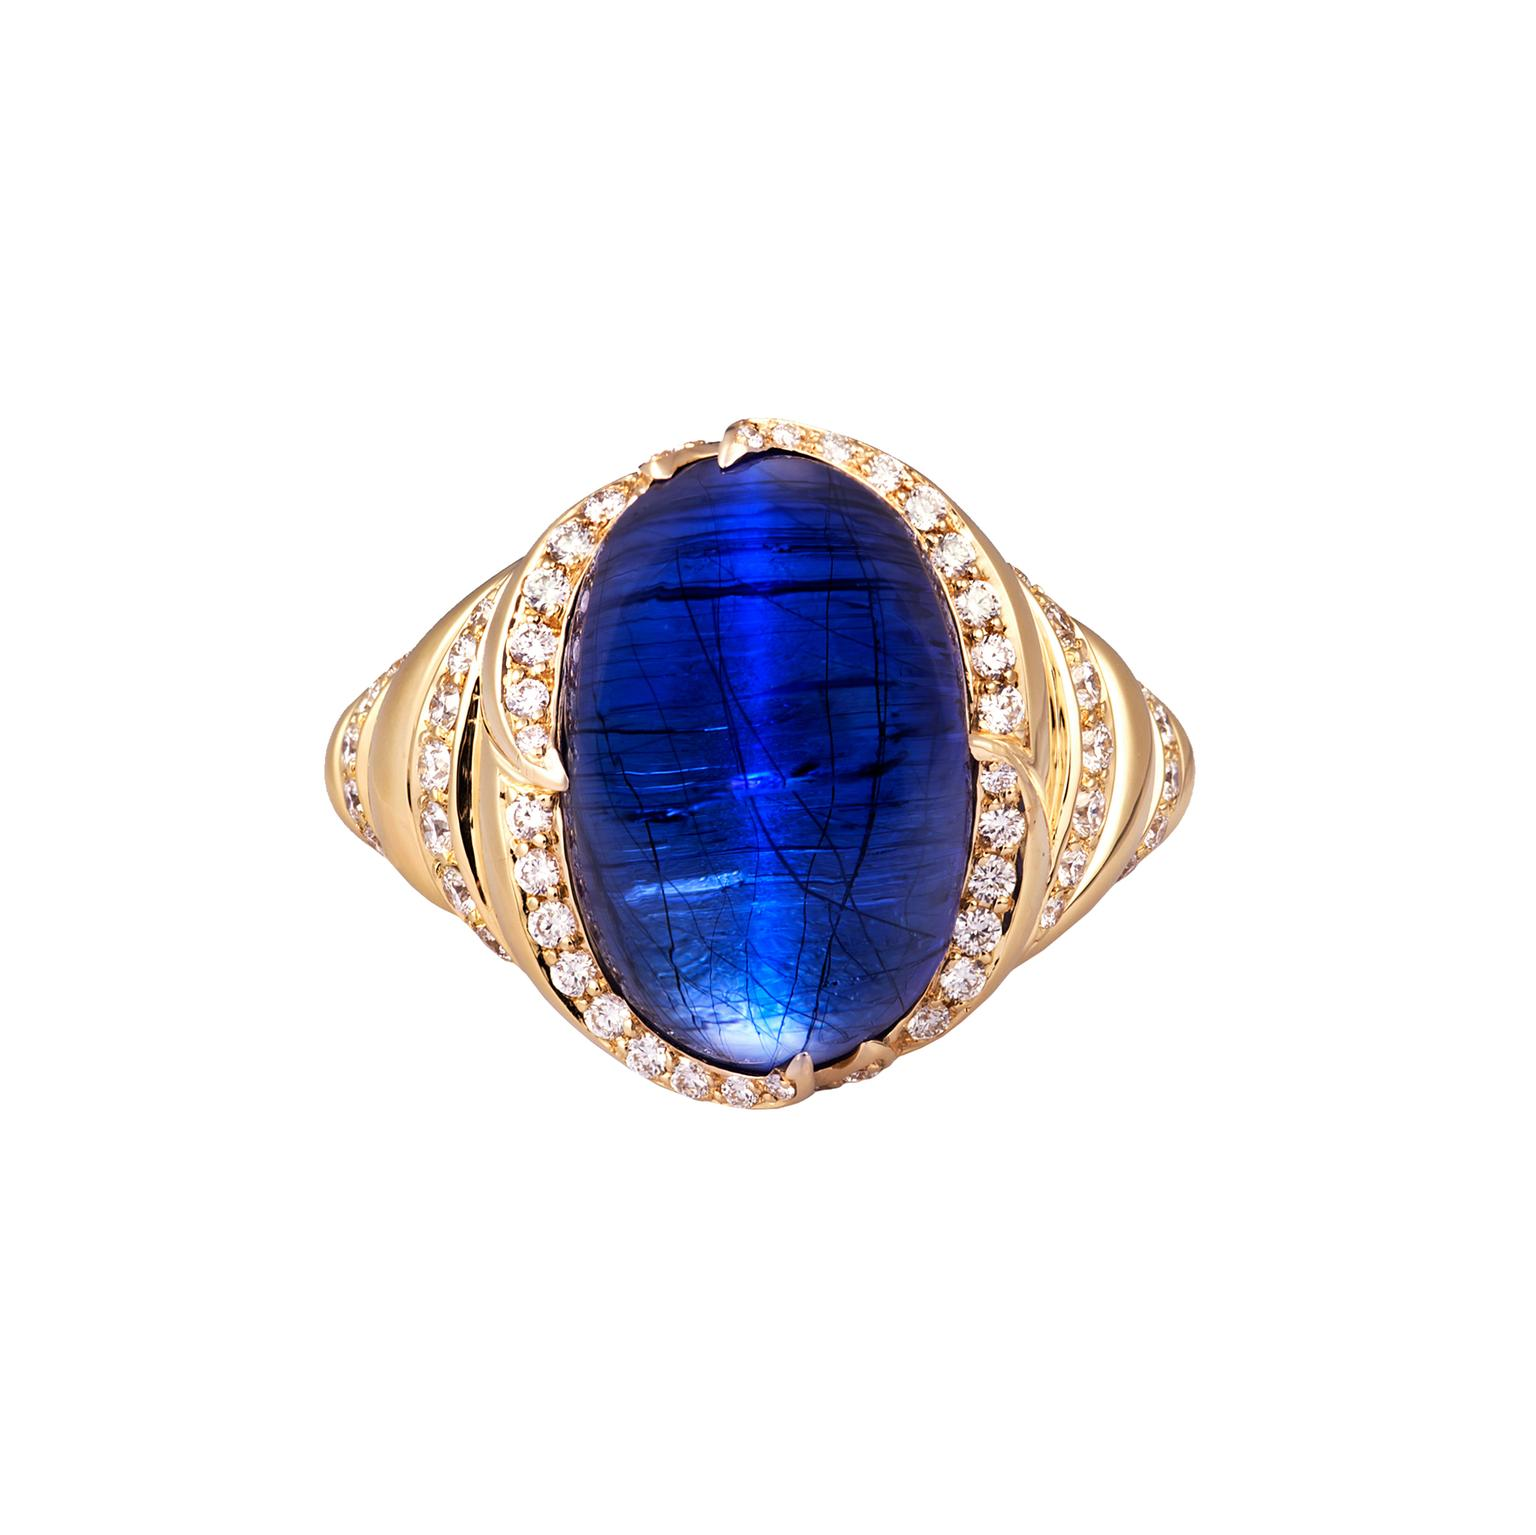 Kat Florence cat's eye tanzanite ring